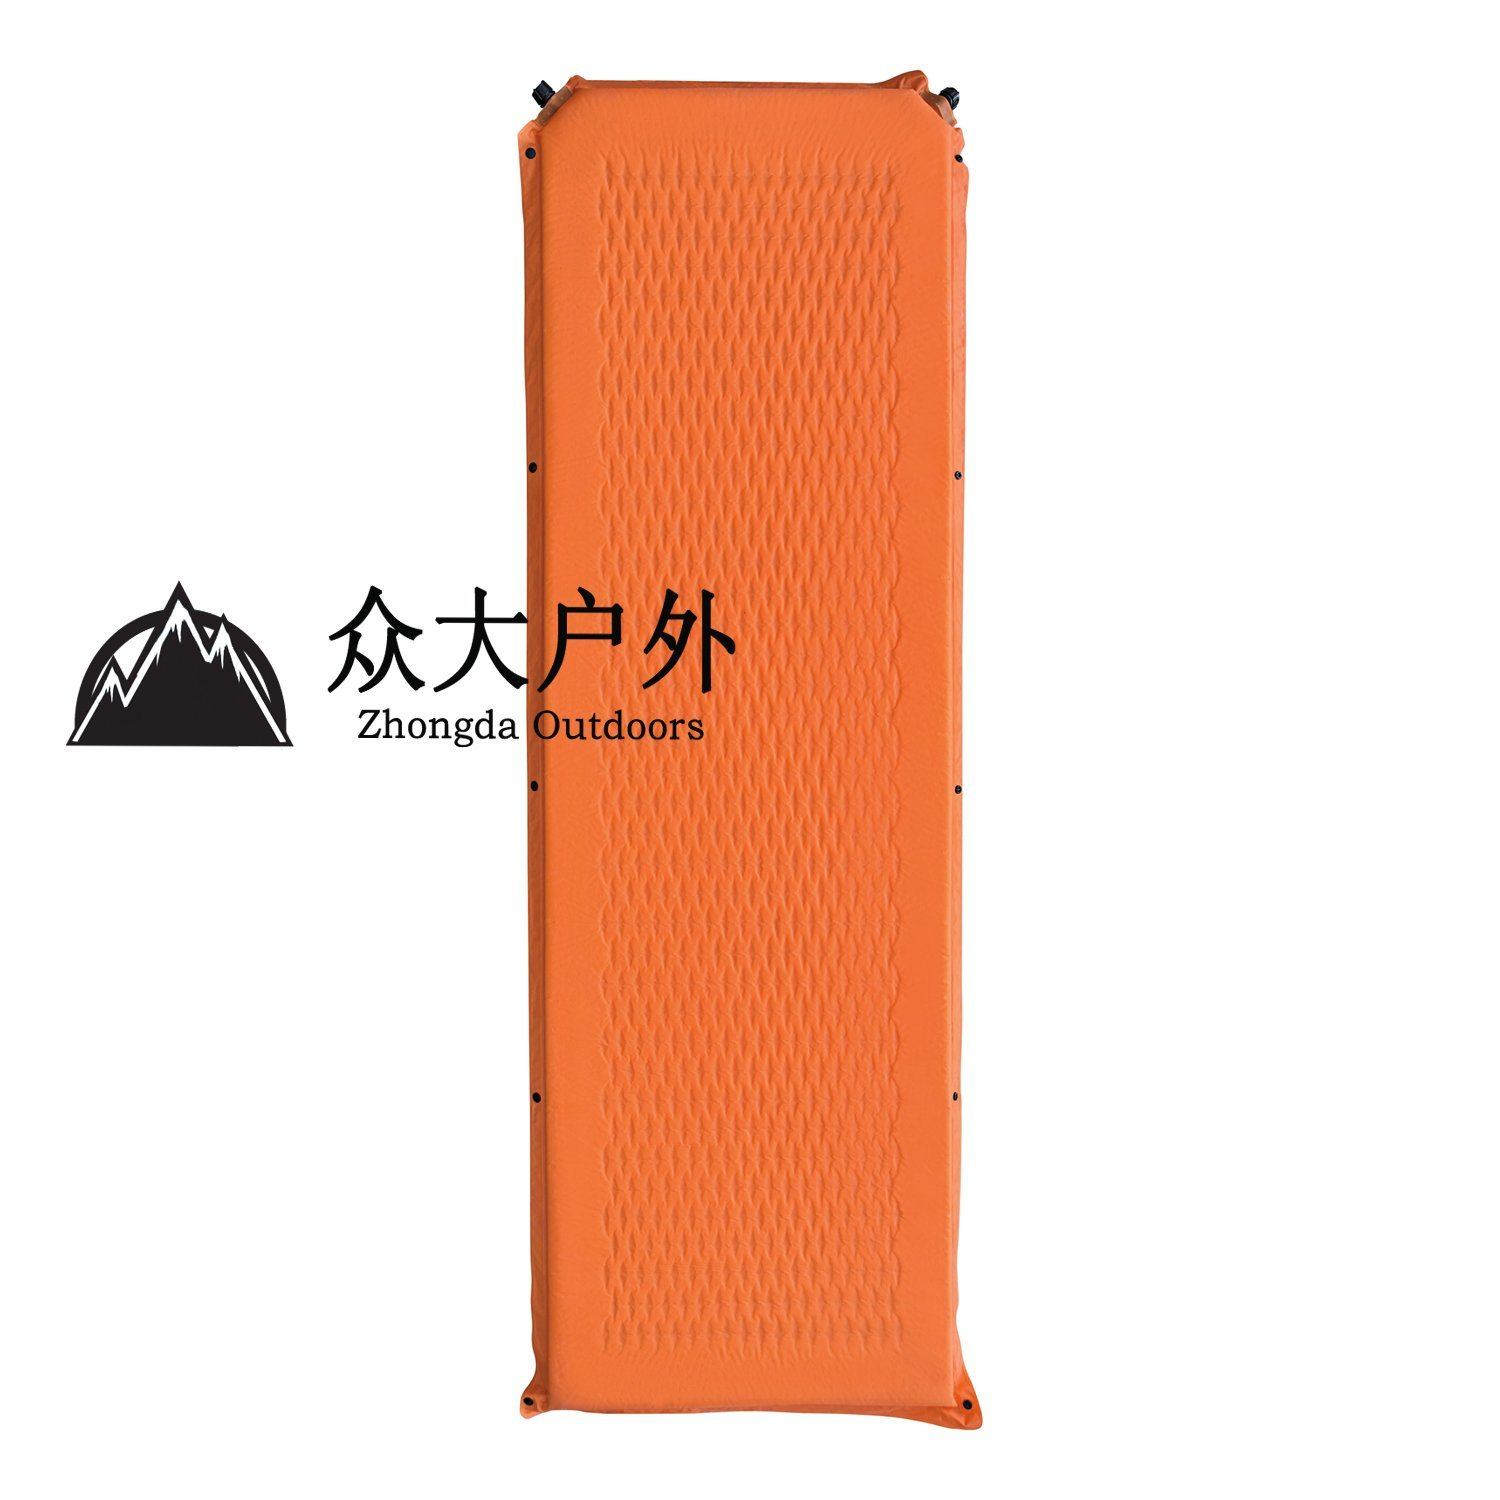 Single Thick Self-Inflating Mattress with Diamond Holes